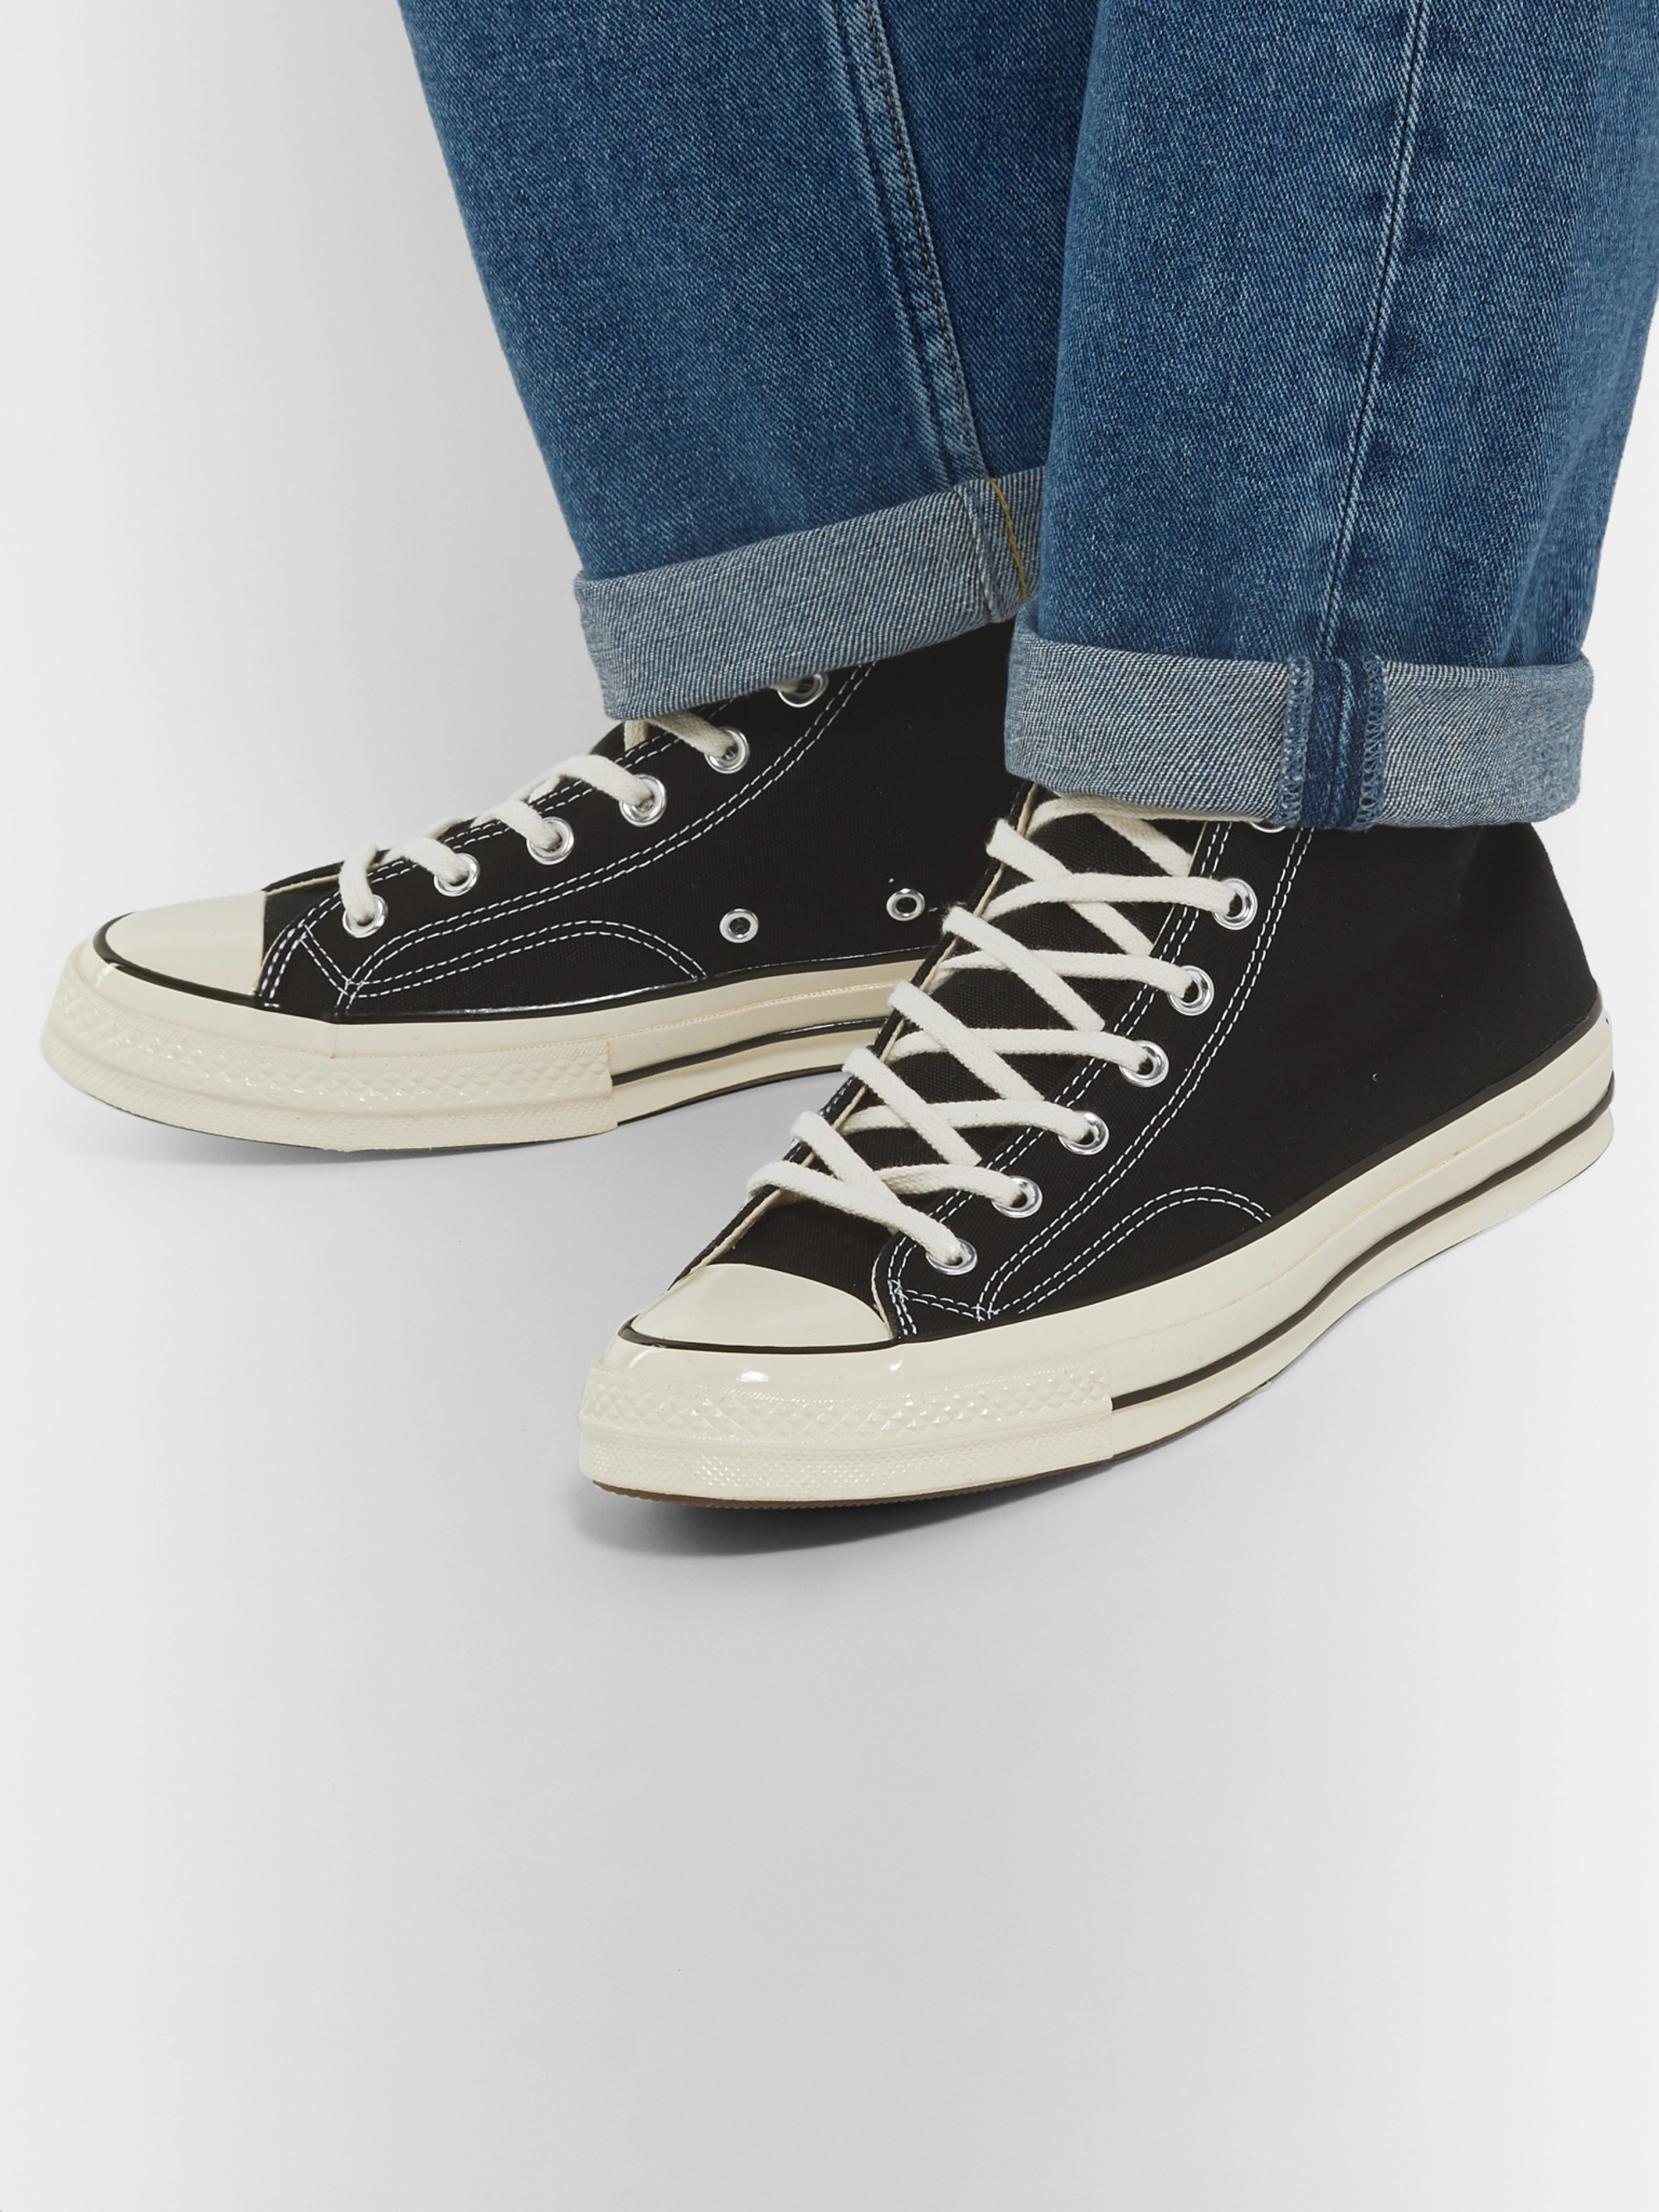 Converse Chuck 70 Canvas High-Top Sneakers